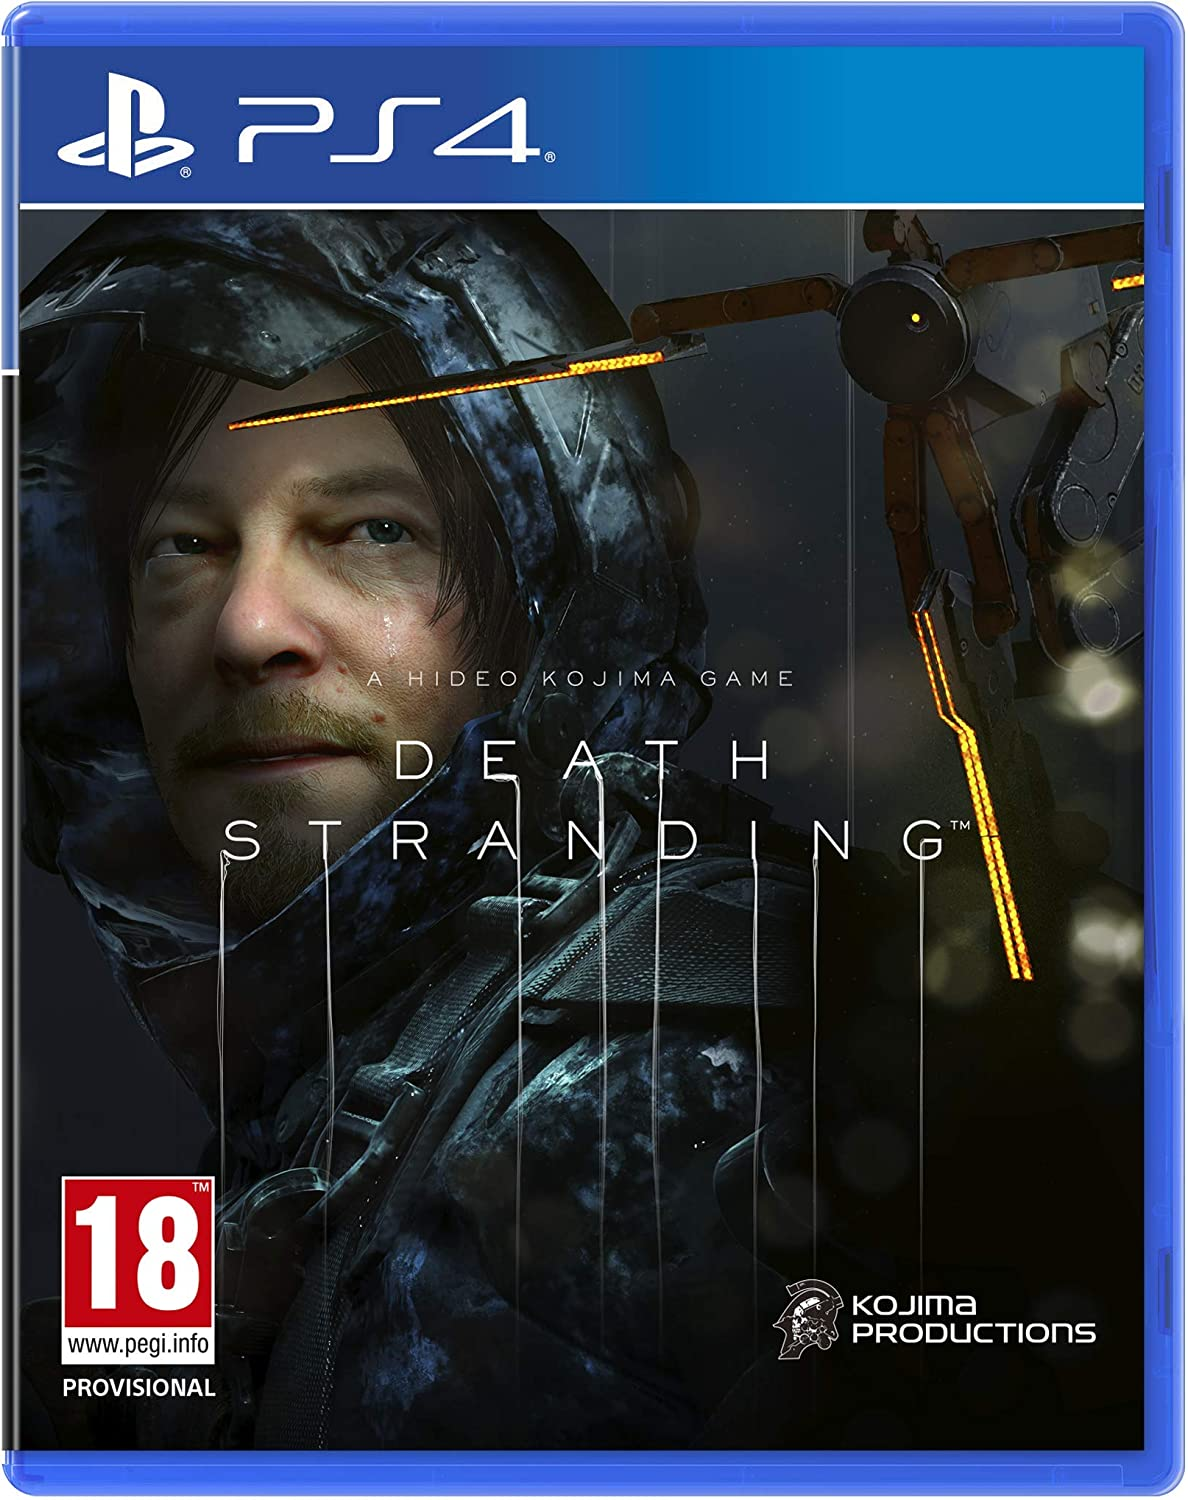 Death Stranding: Amazon.co.uk: PC & Video Games